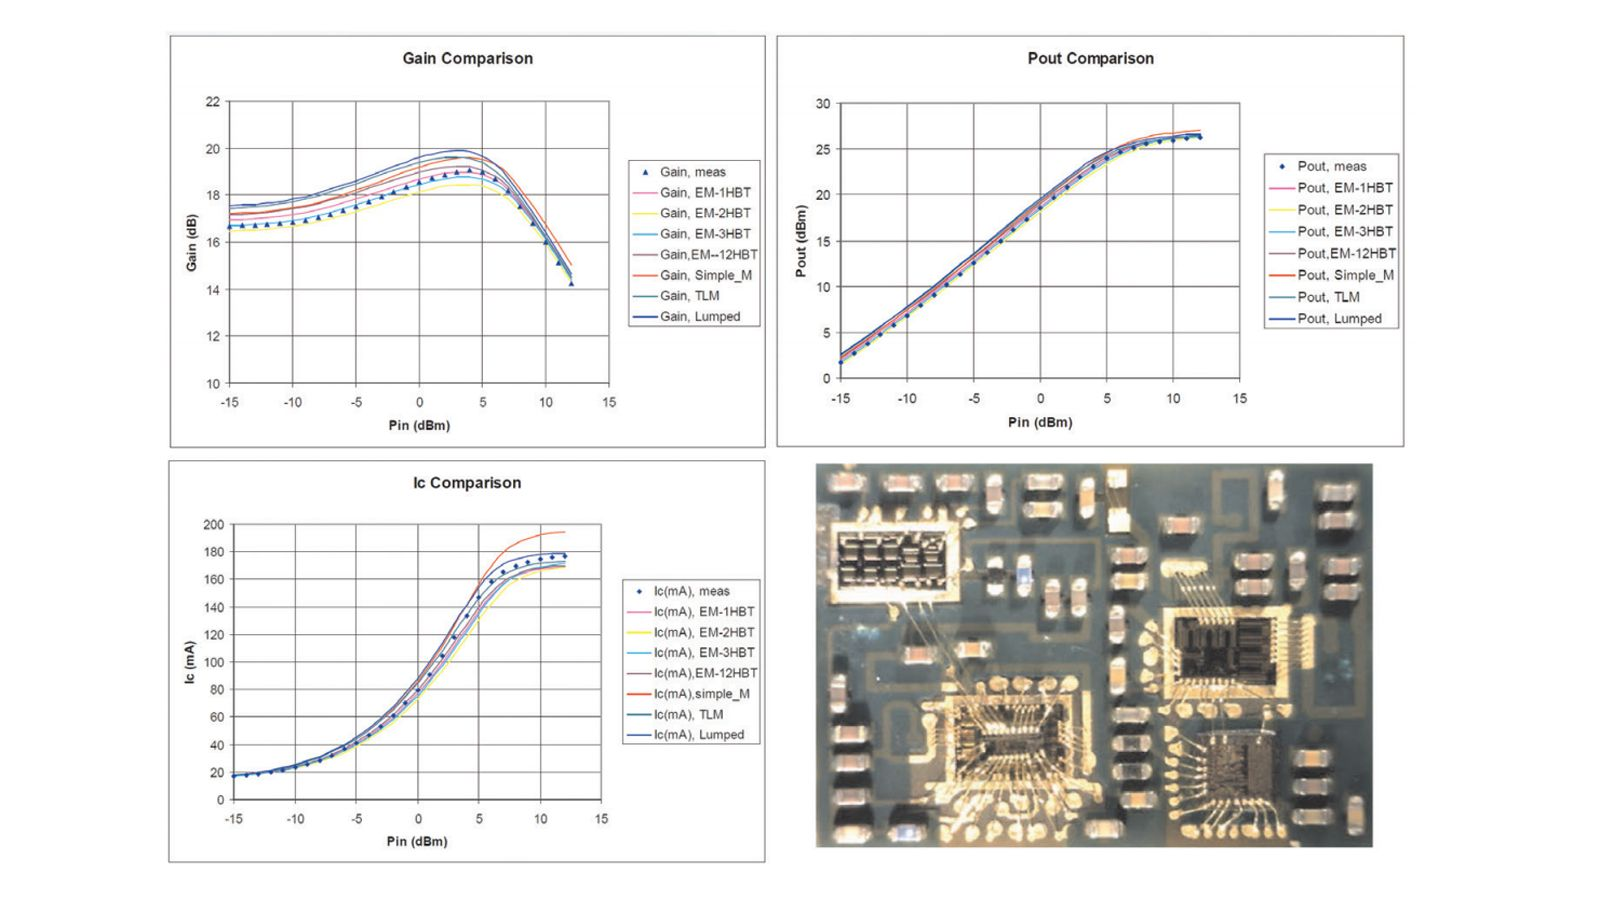 Integrating Multiple Technology Devices onto Laminate-Based Multi-Chip-Modules Using an Integrated Design Flow